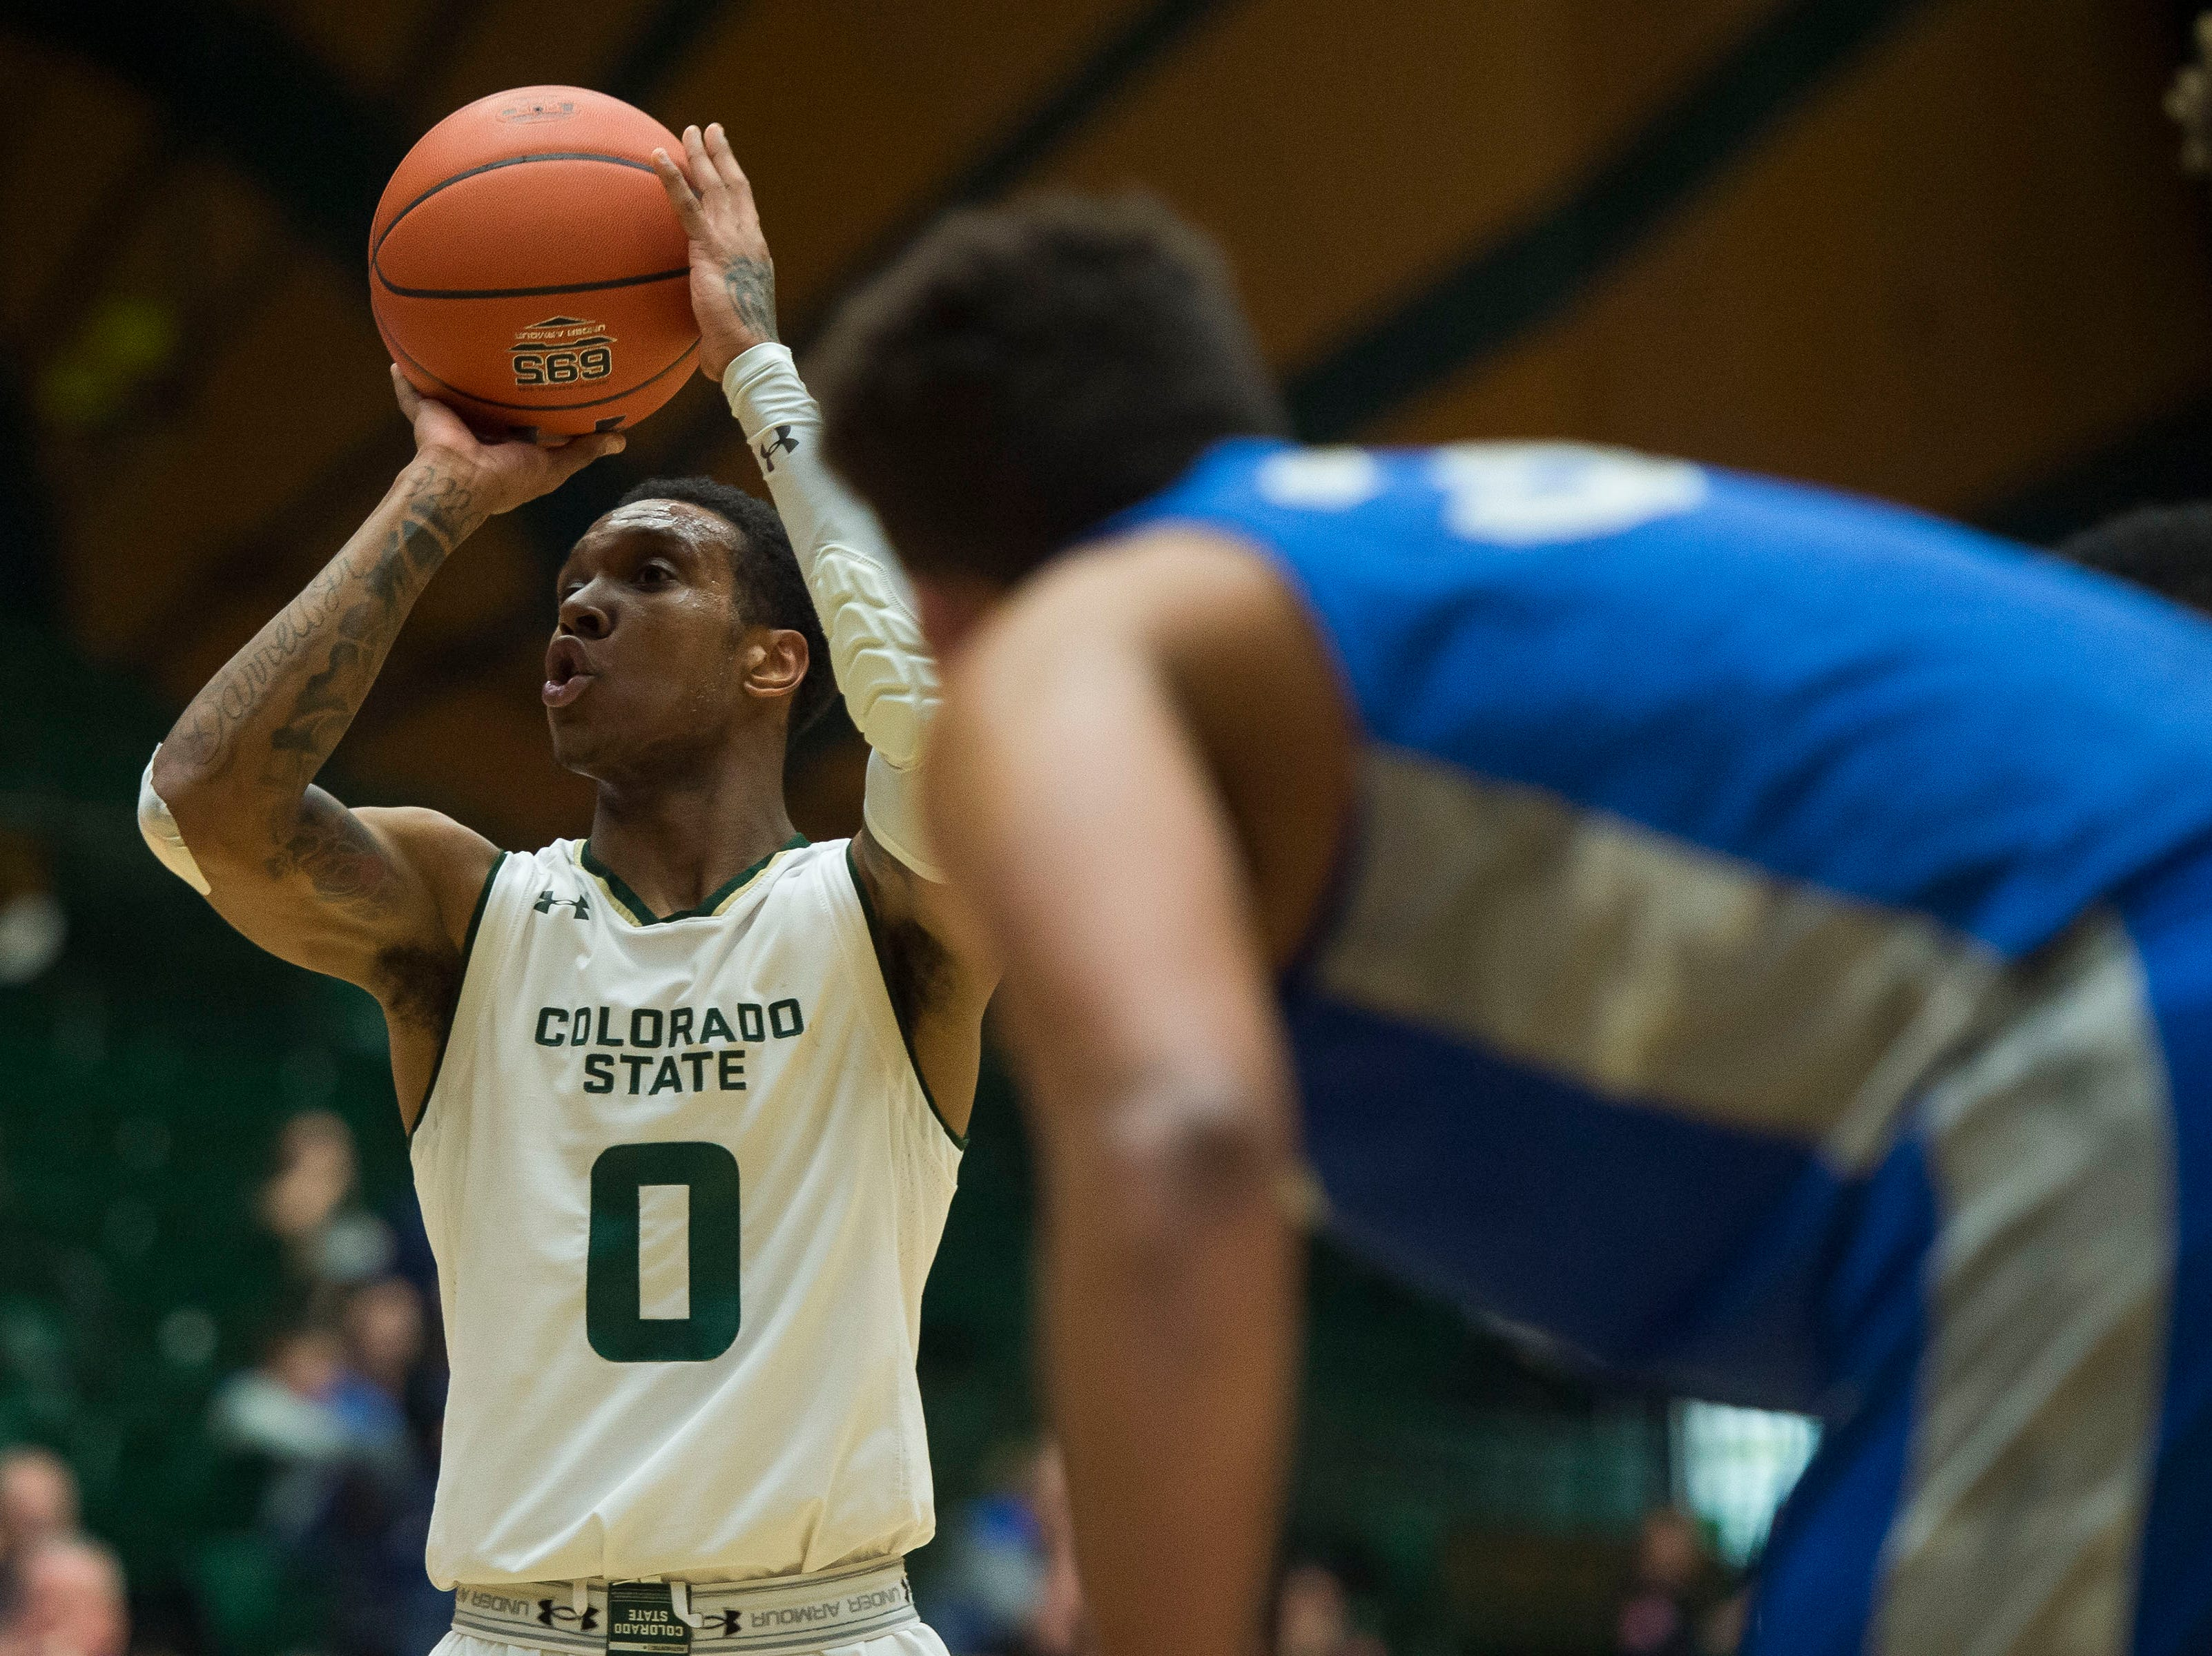 Colorado State University junior guard Hyron Edwards (0) attempts a free throw after drawing a foul from Air Force Academy players on Tuesday, Jan. 8, 2019, at Moby Arena in Fort Collins, Colo.